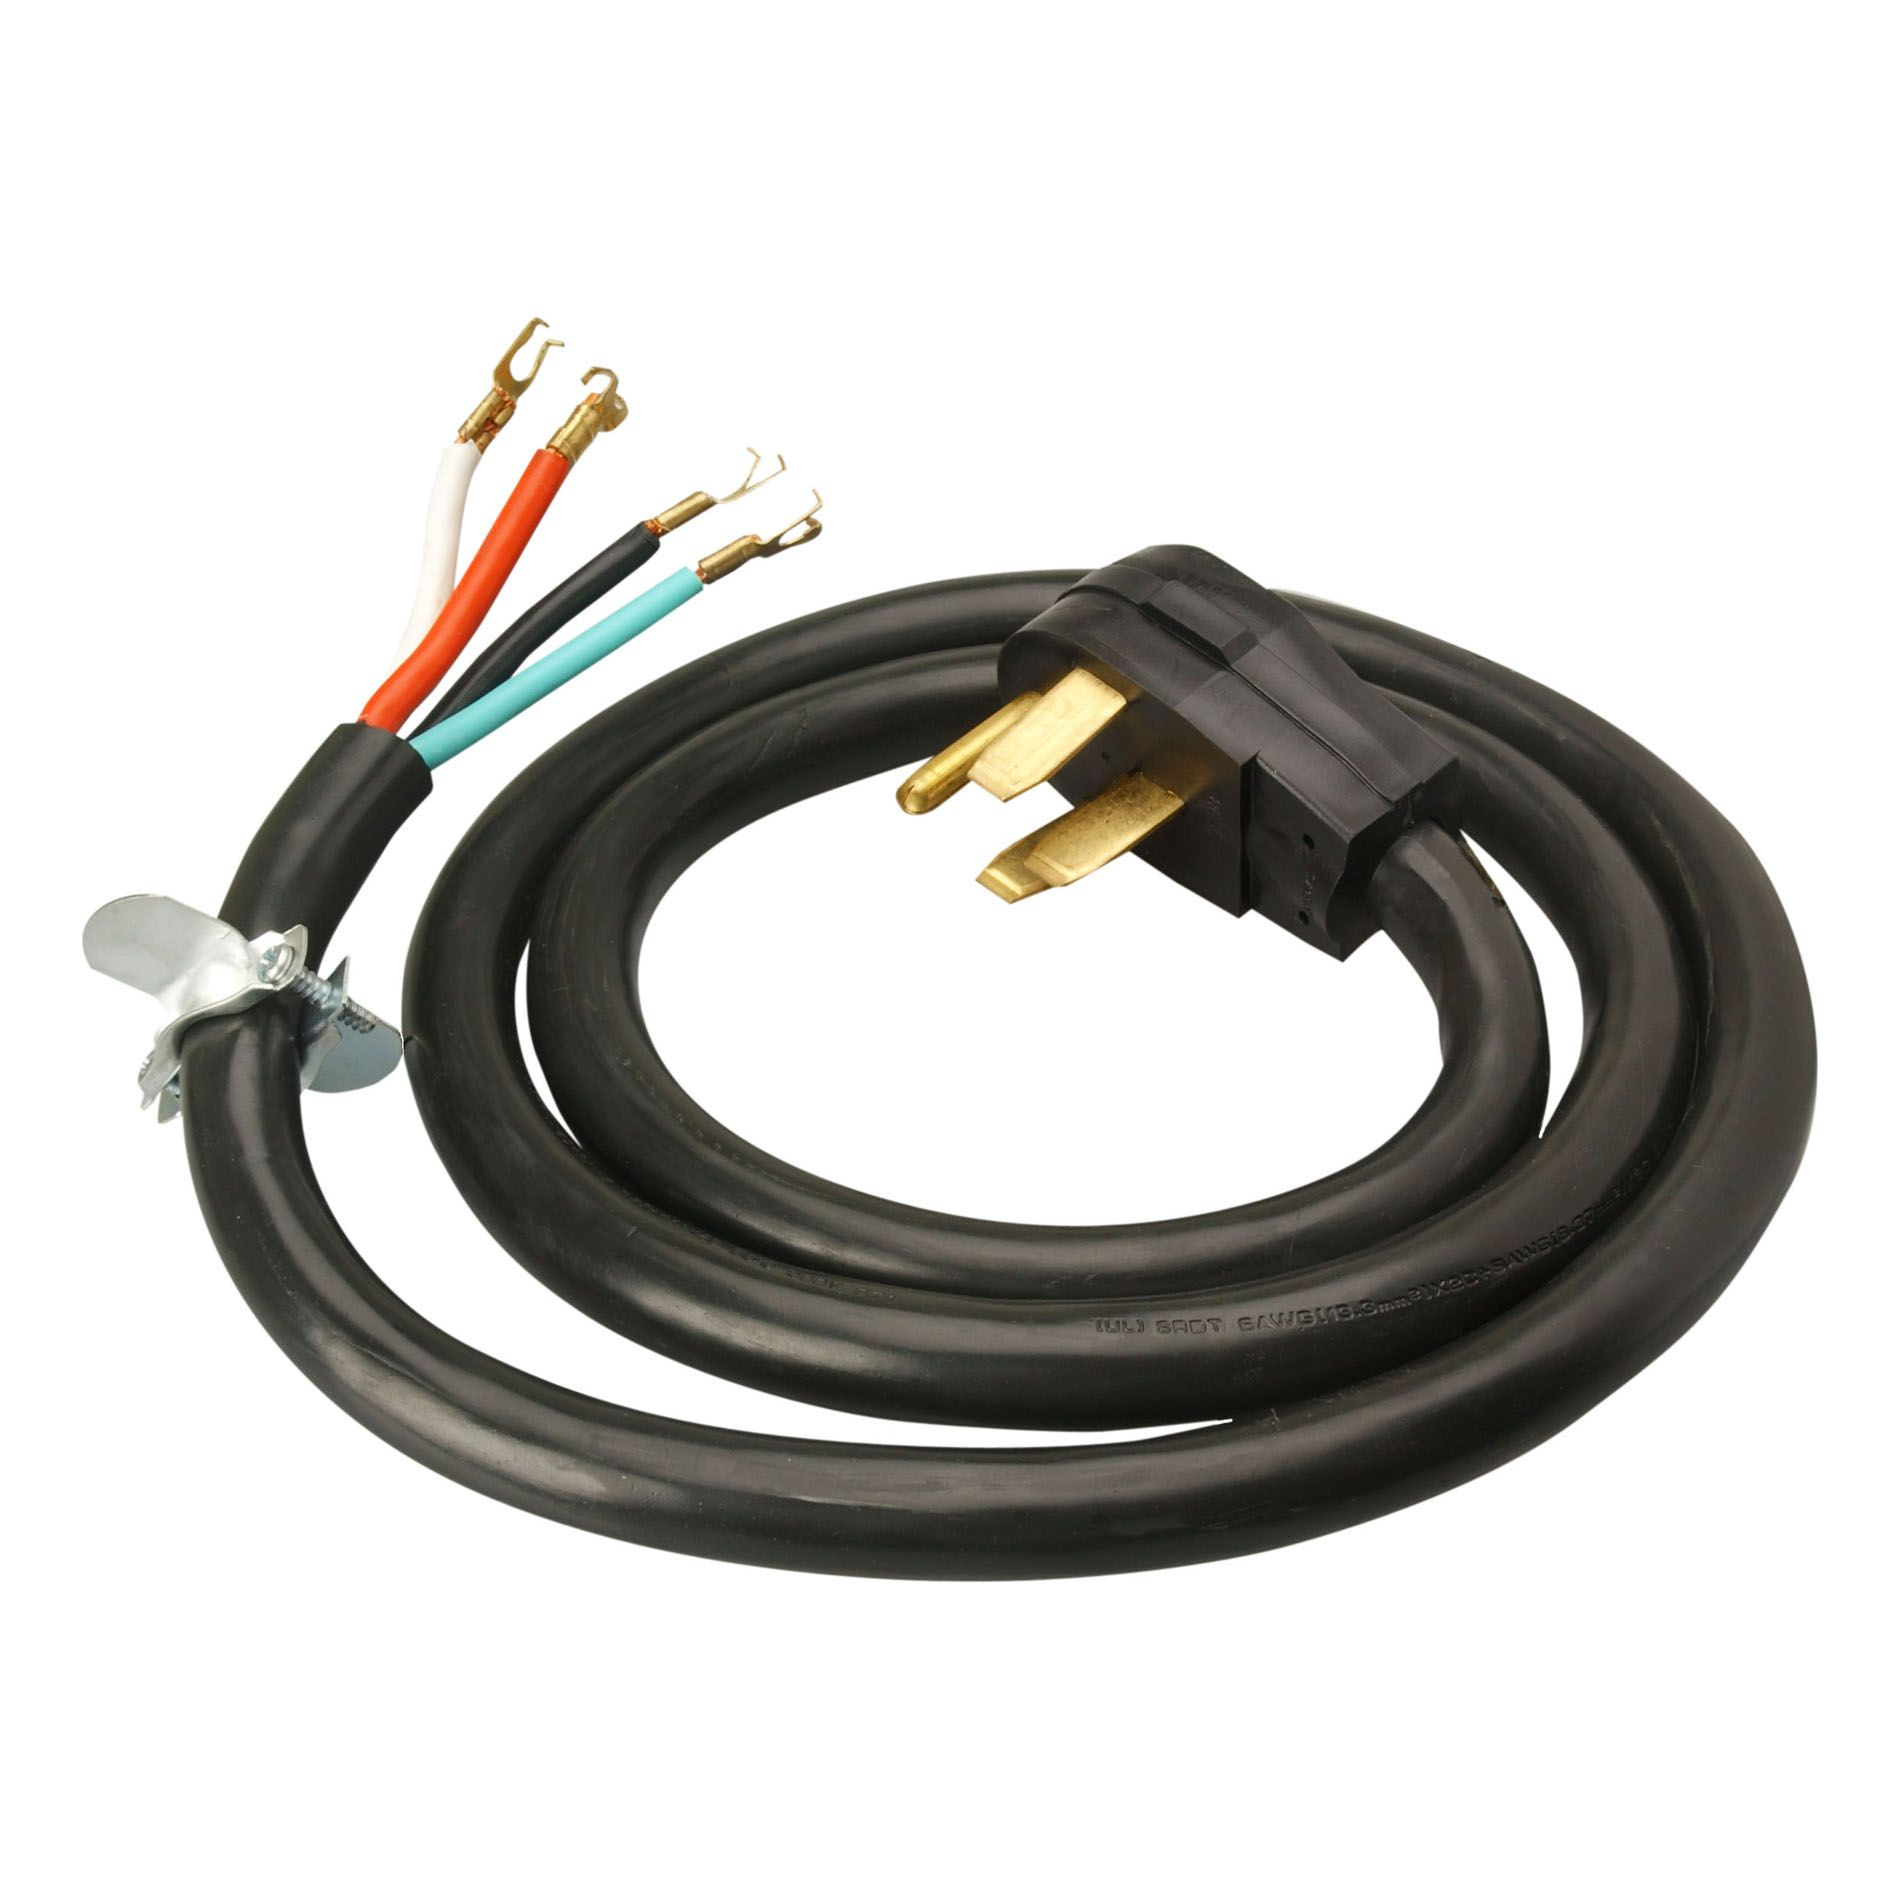 hight resolution of electricord 49626 4 wire 6 ft electric range cord sears outletdiagram 3 wire range cord